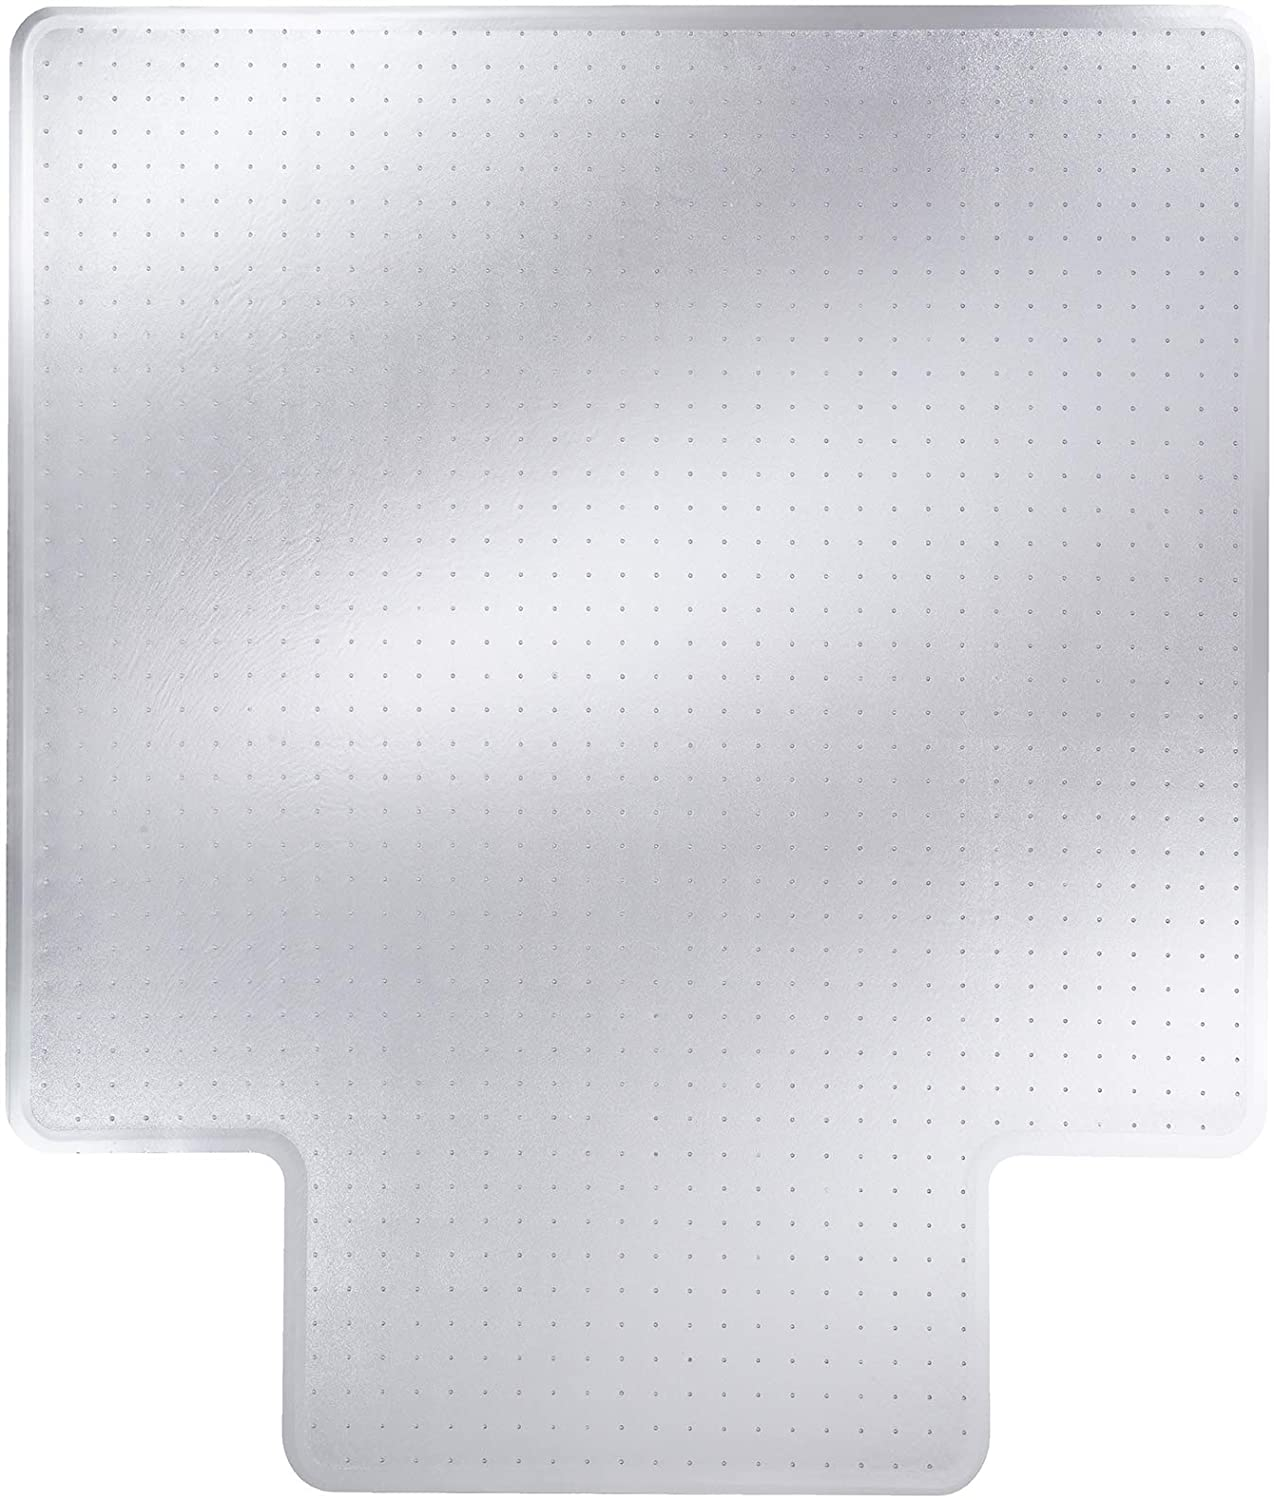 Glide 売り込み Right Vinyl Chair Mat with Lip 45